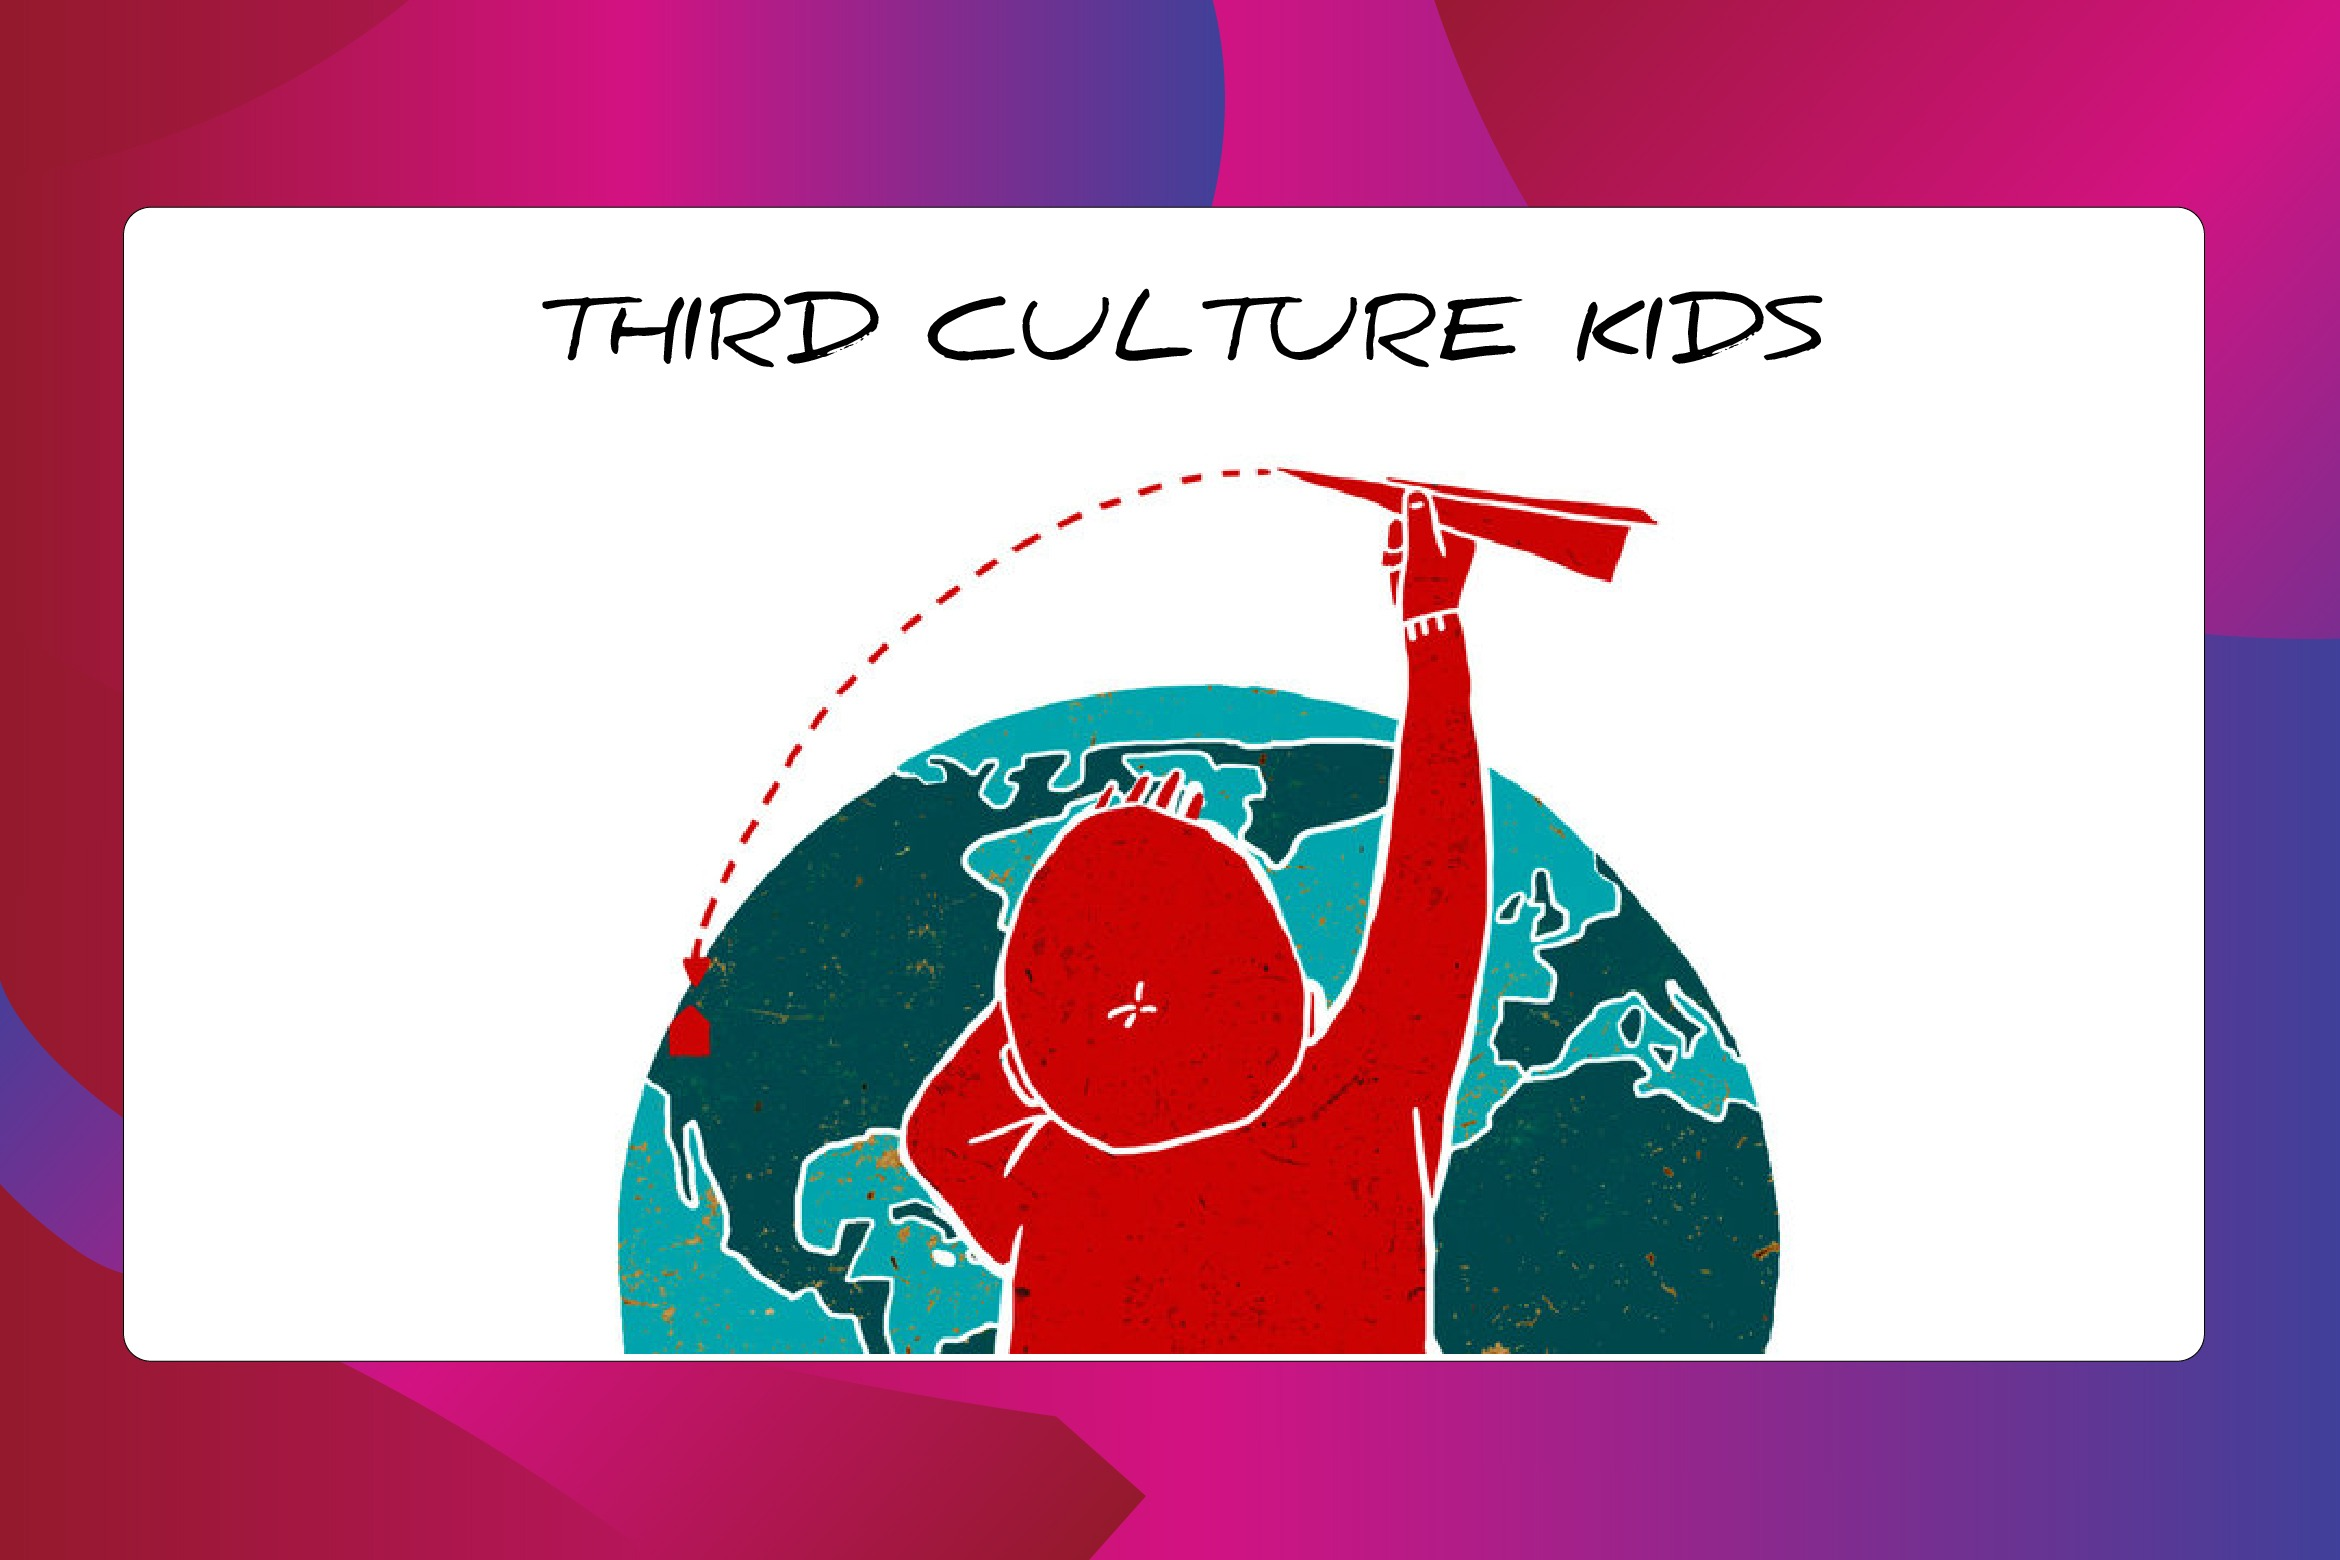 Third culture kids on Branding - Olivia Stoch